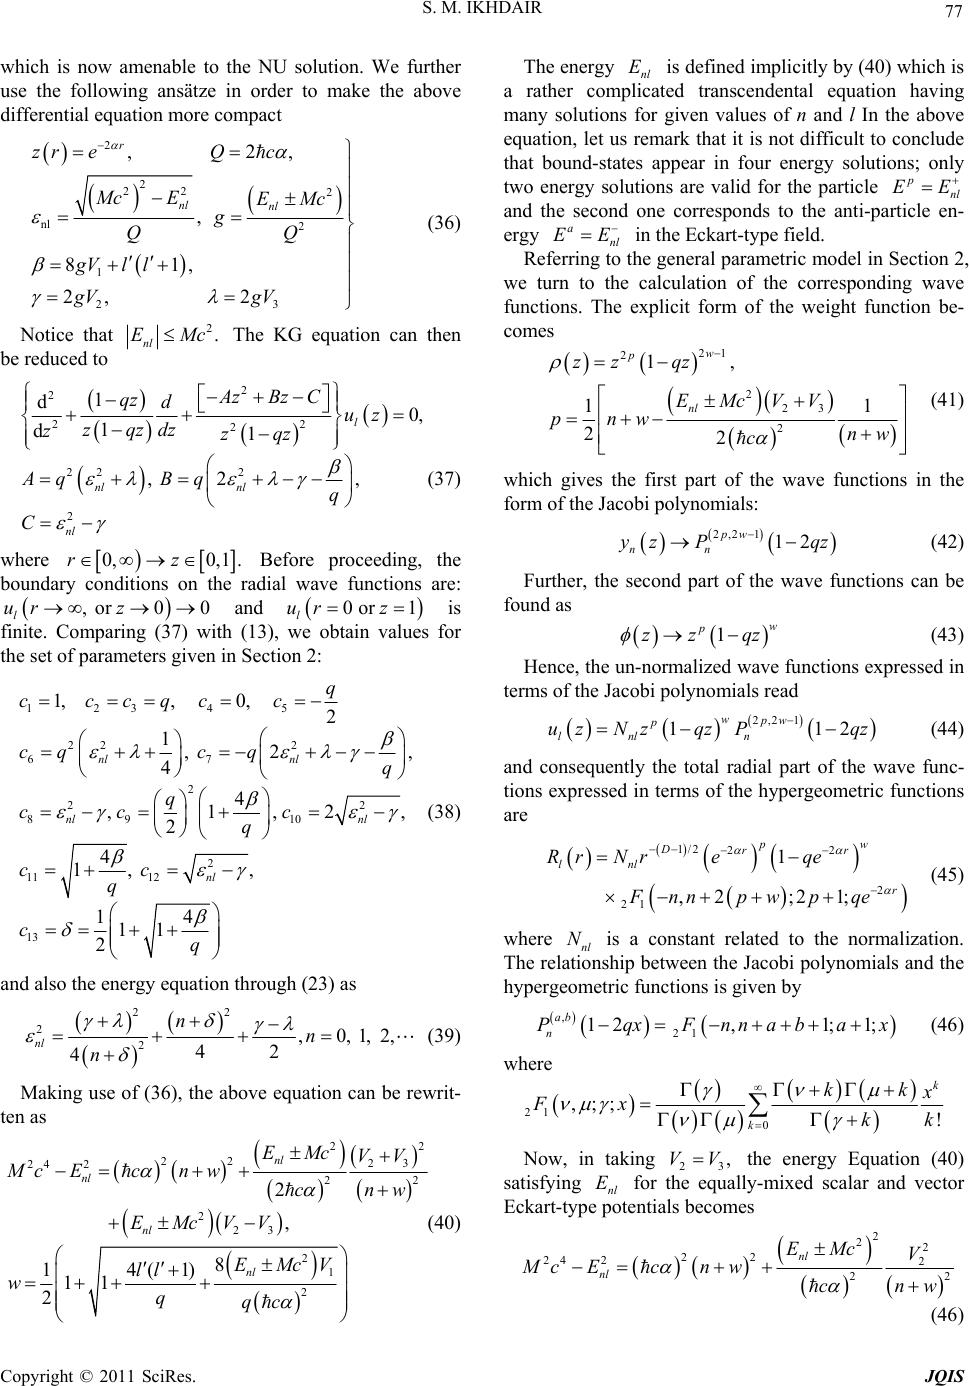 Bound States Of The Klein Gordon For Exponential Type Potentials In D Dimensions Adding polynomial expressions 172